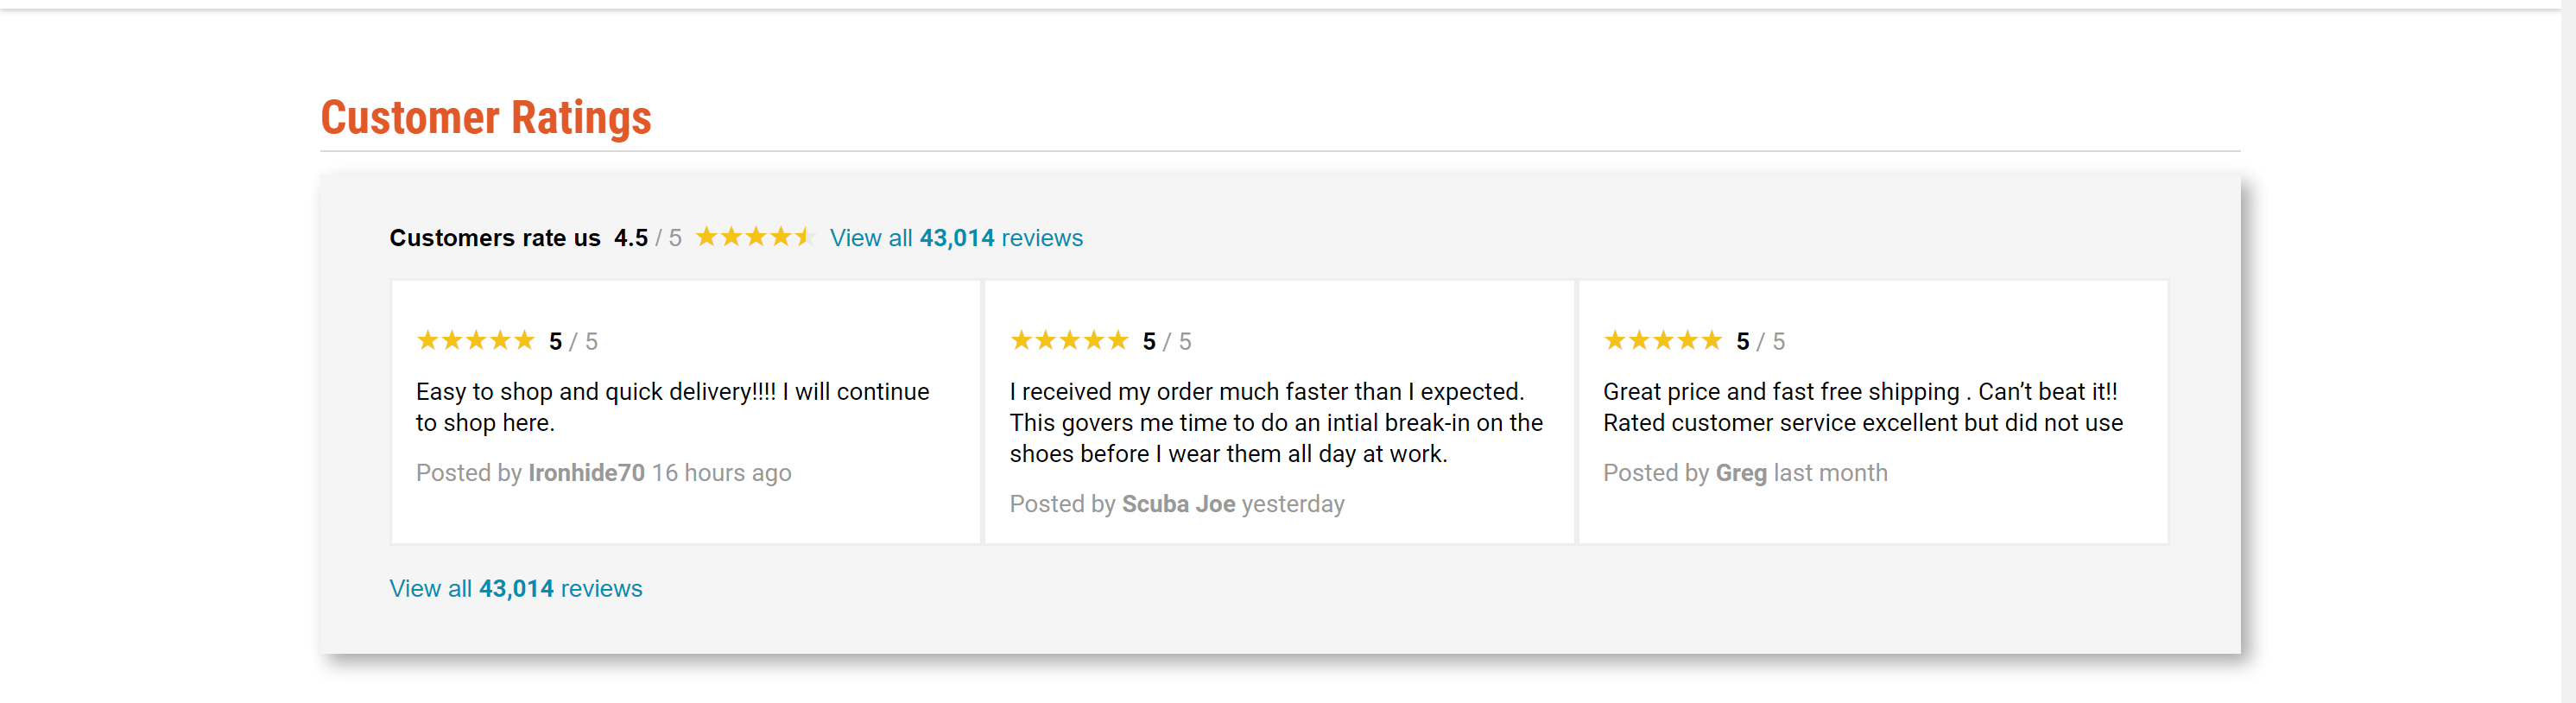 Sportsman's guide customer review